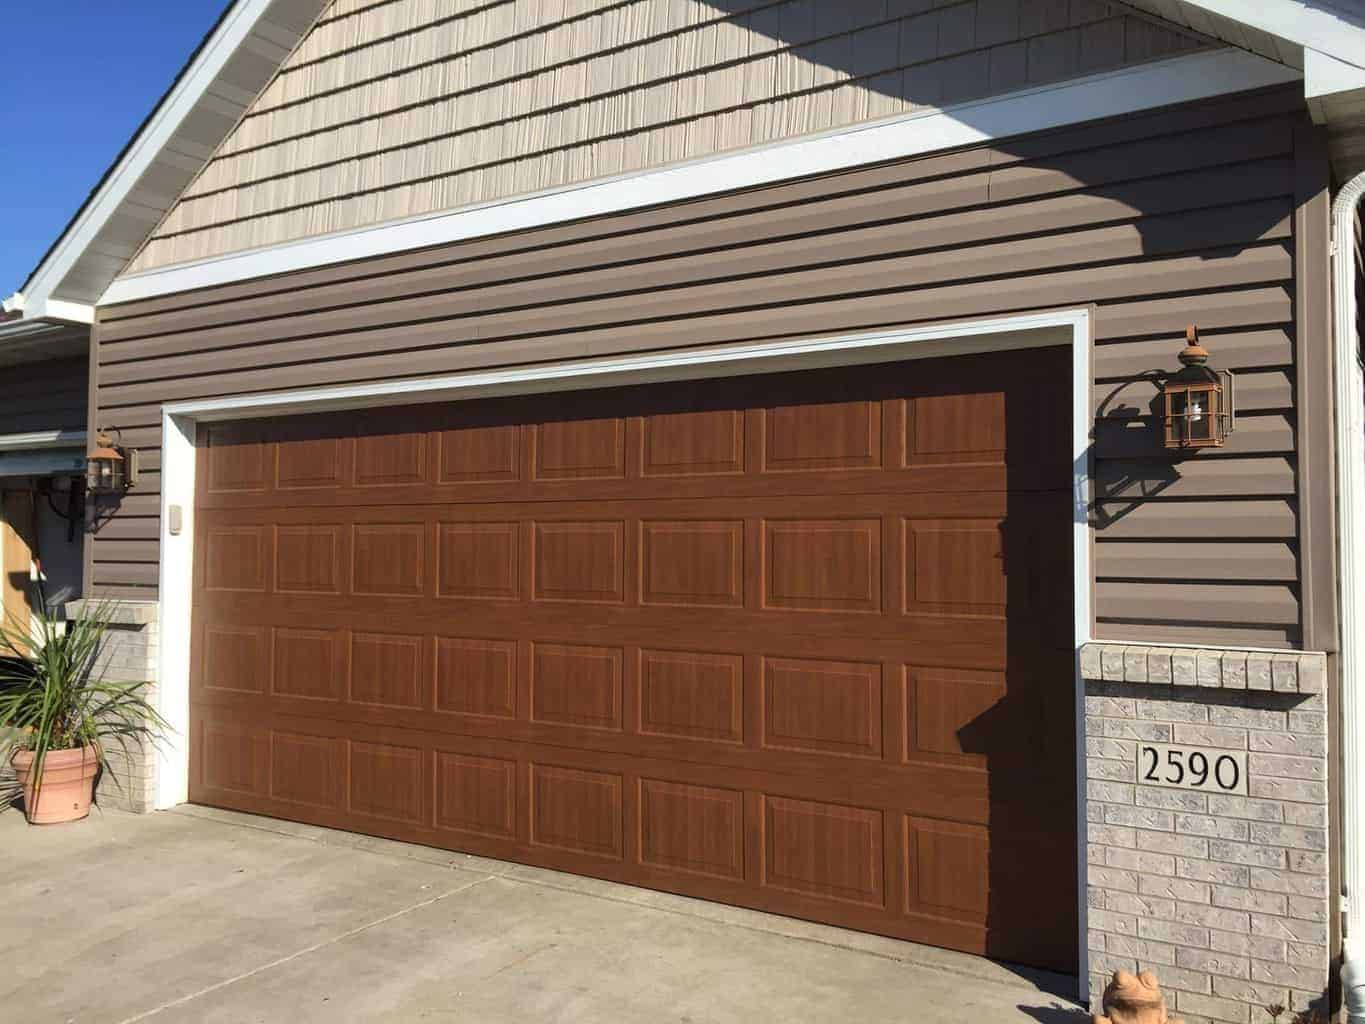 Thermacore 194 Series Steel Garage Door   Hastings, MN Install